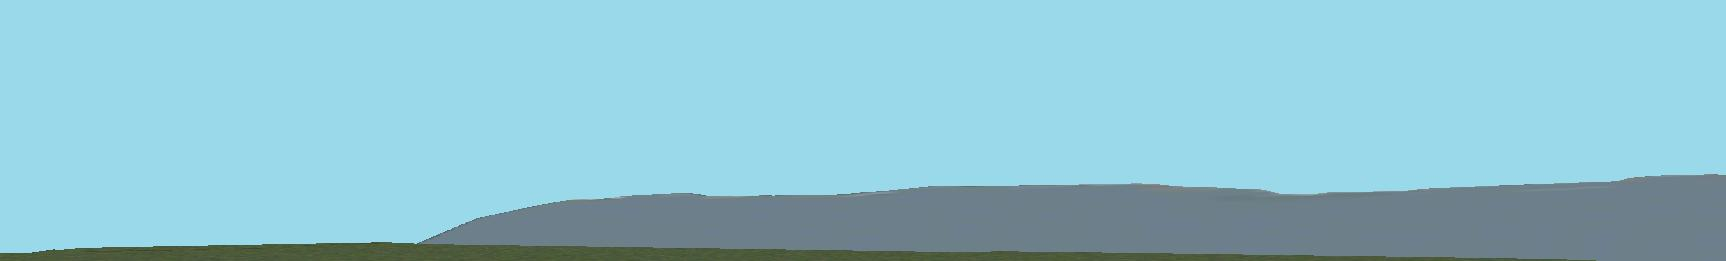 DISTANCE MOUNTAIN SCAPE V1.0